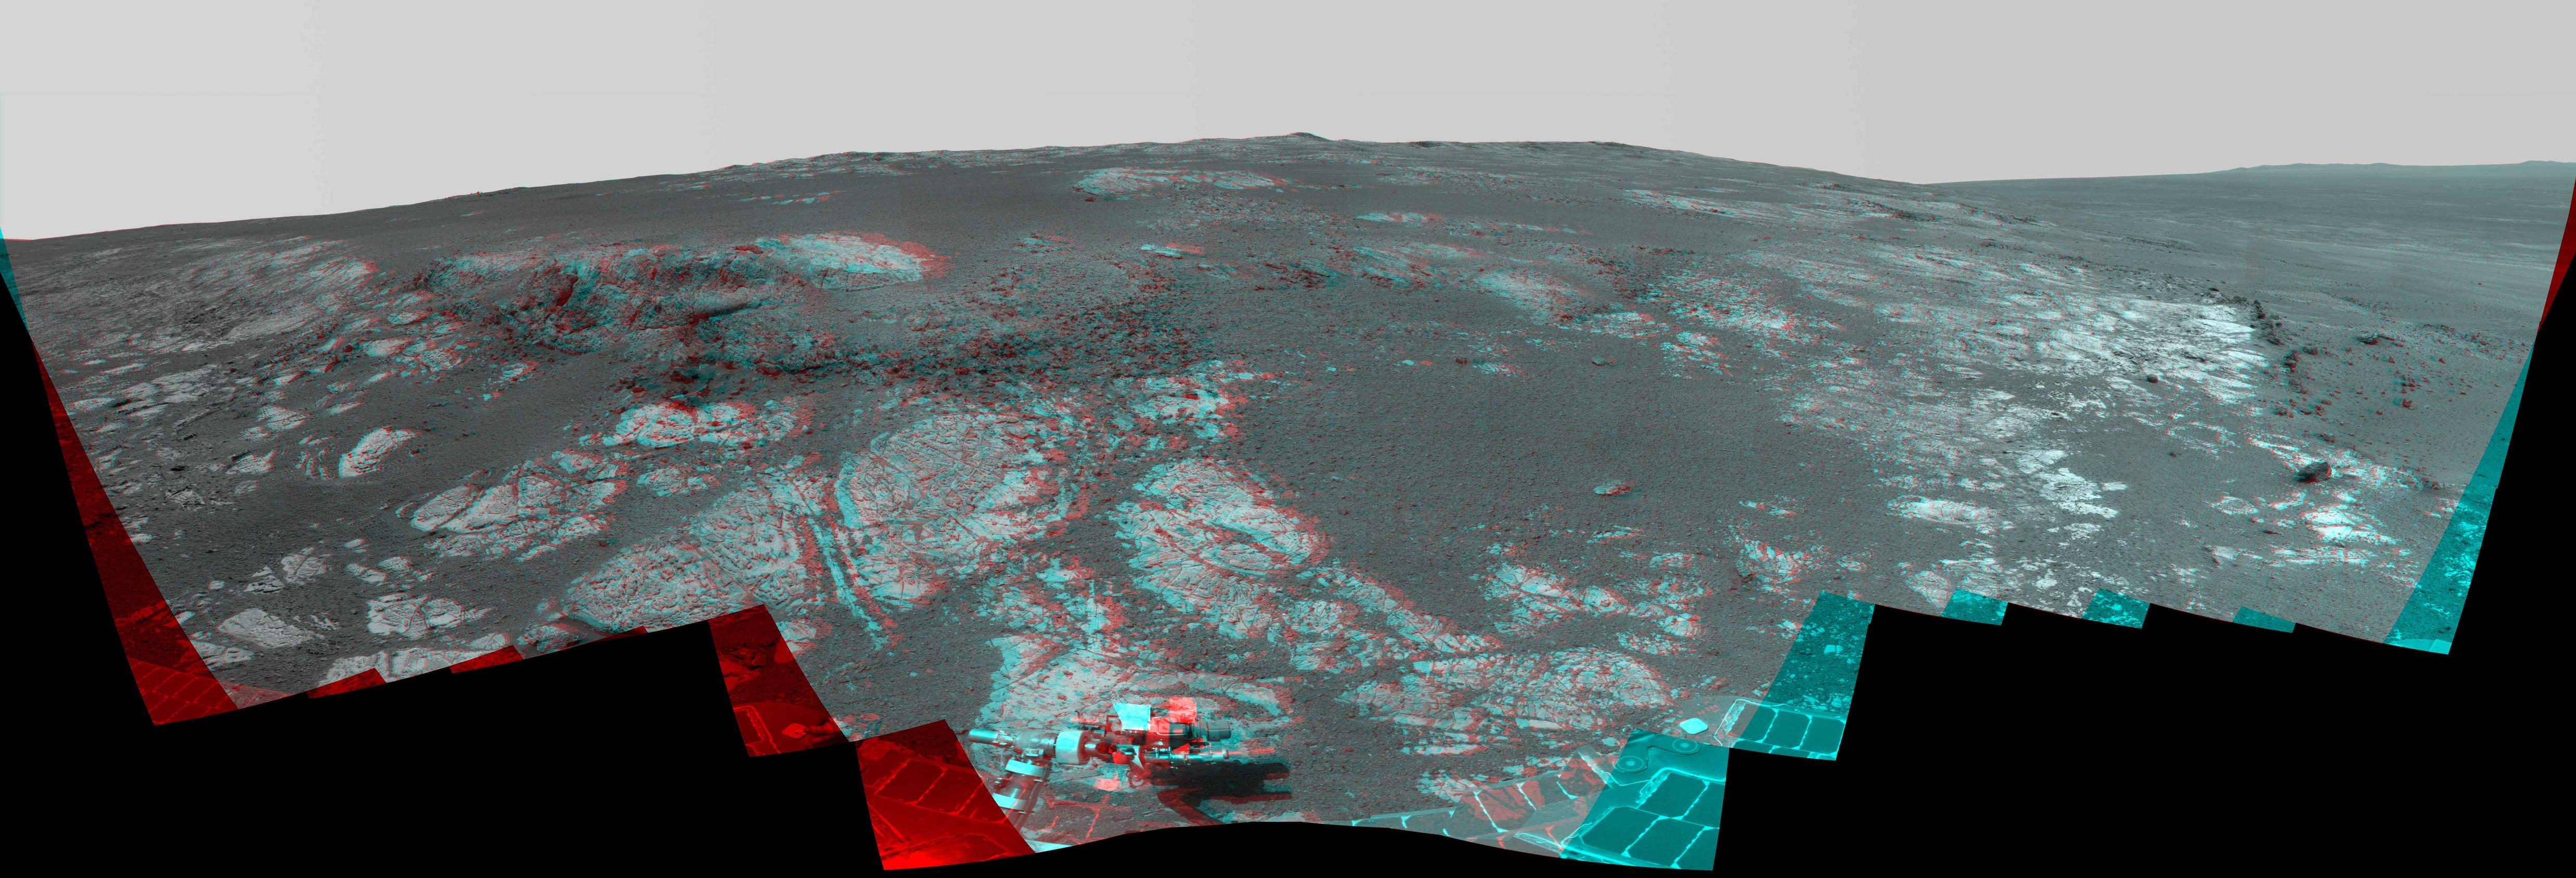 As NASA's Mars Exploration Rover Opportunity neared the ninth anniversary of its landing on Mars, the rover was working in the 'Matijevic Hill' area seen in this stereo view from Opportunity's panoramic camera (Pancam).